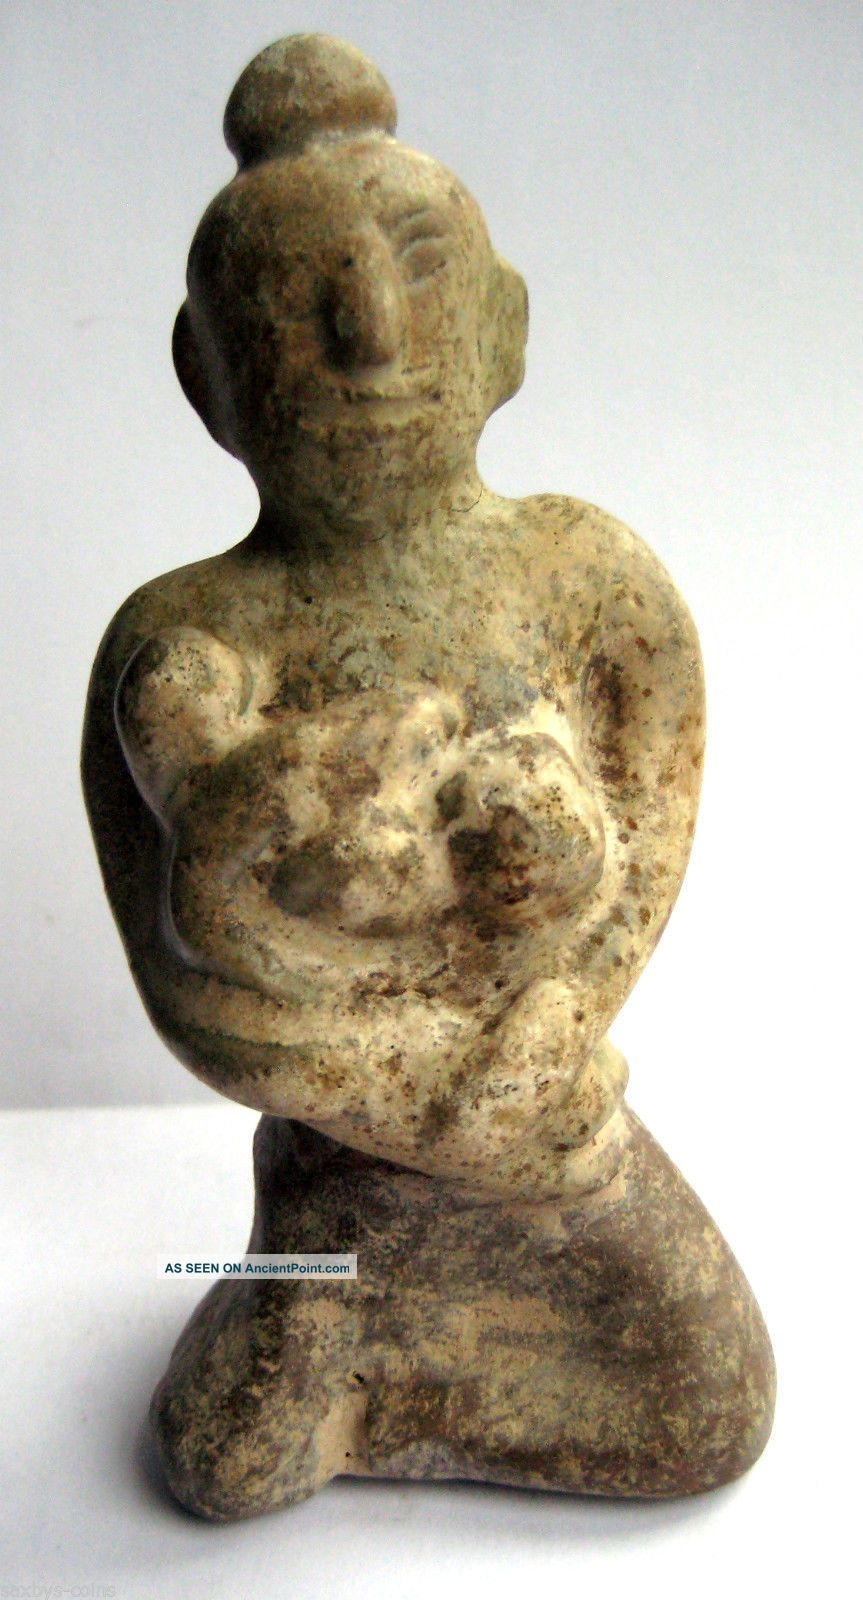 Circa.  1400 A.  D Thailand Medieval Period Glazed Clay Mother Goddess Statue Idol Near Eastern photo